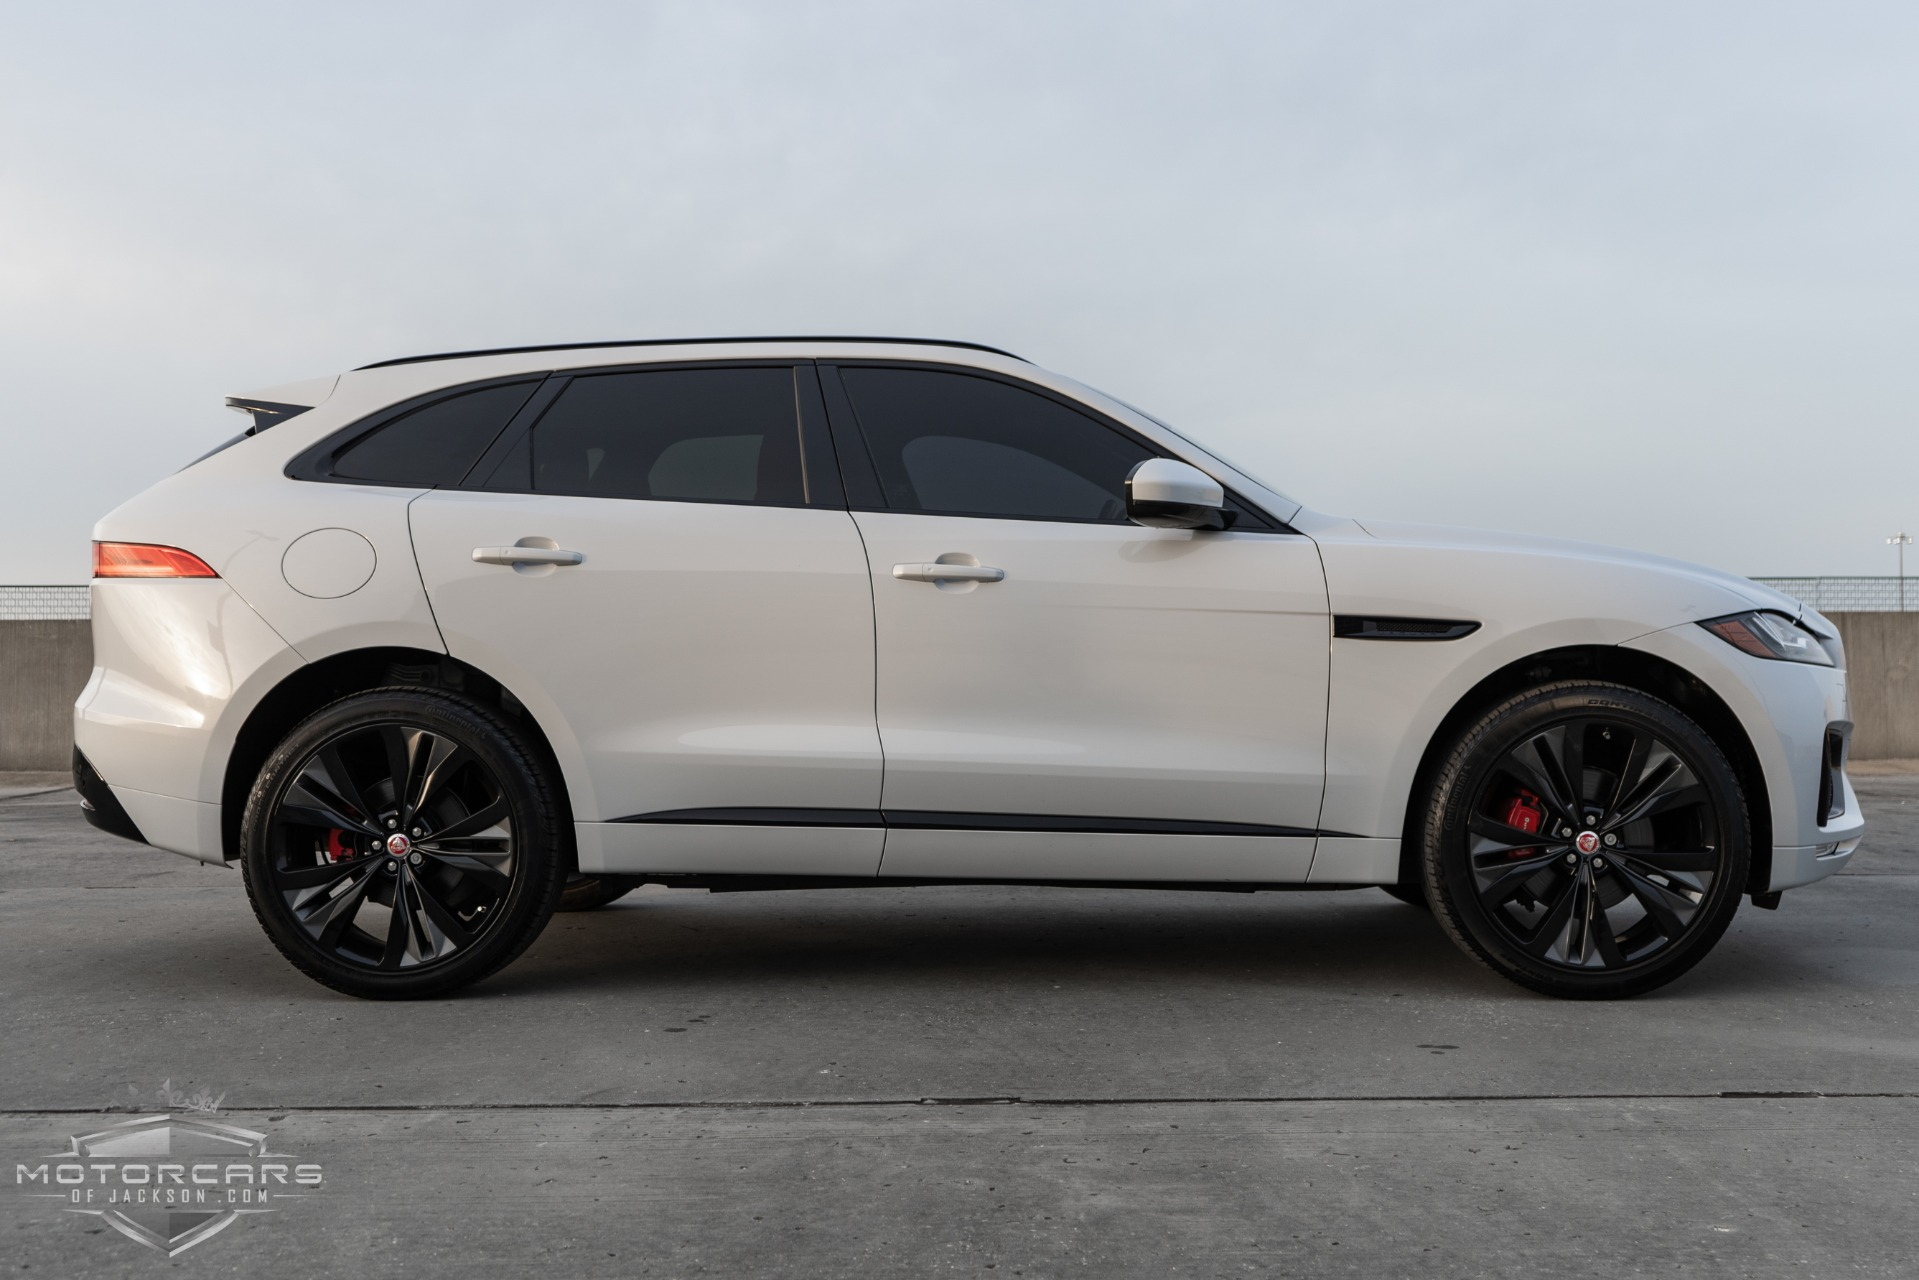 Used-2018-Jaguar-F-PACE---All-Wheel-Drive-S-Jackson-MS